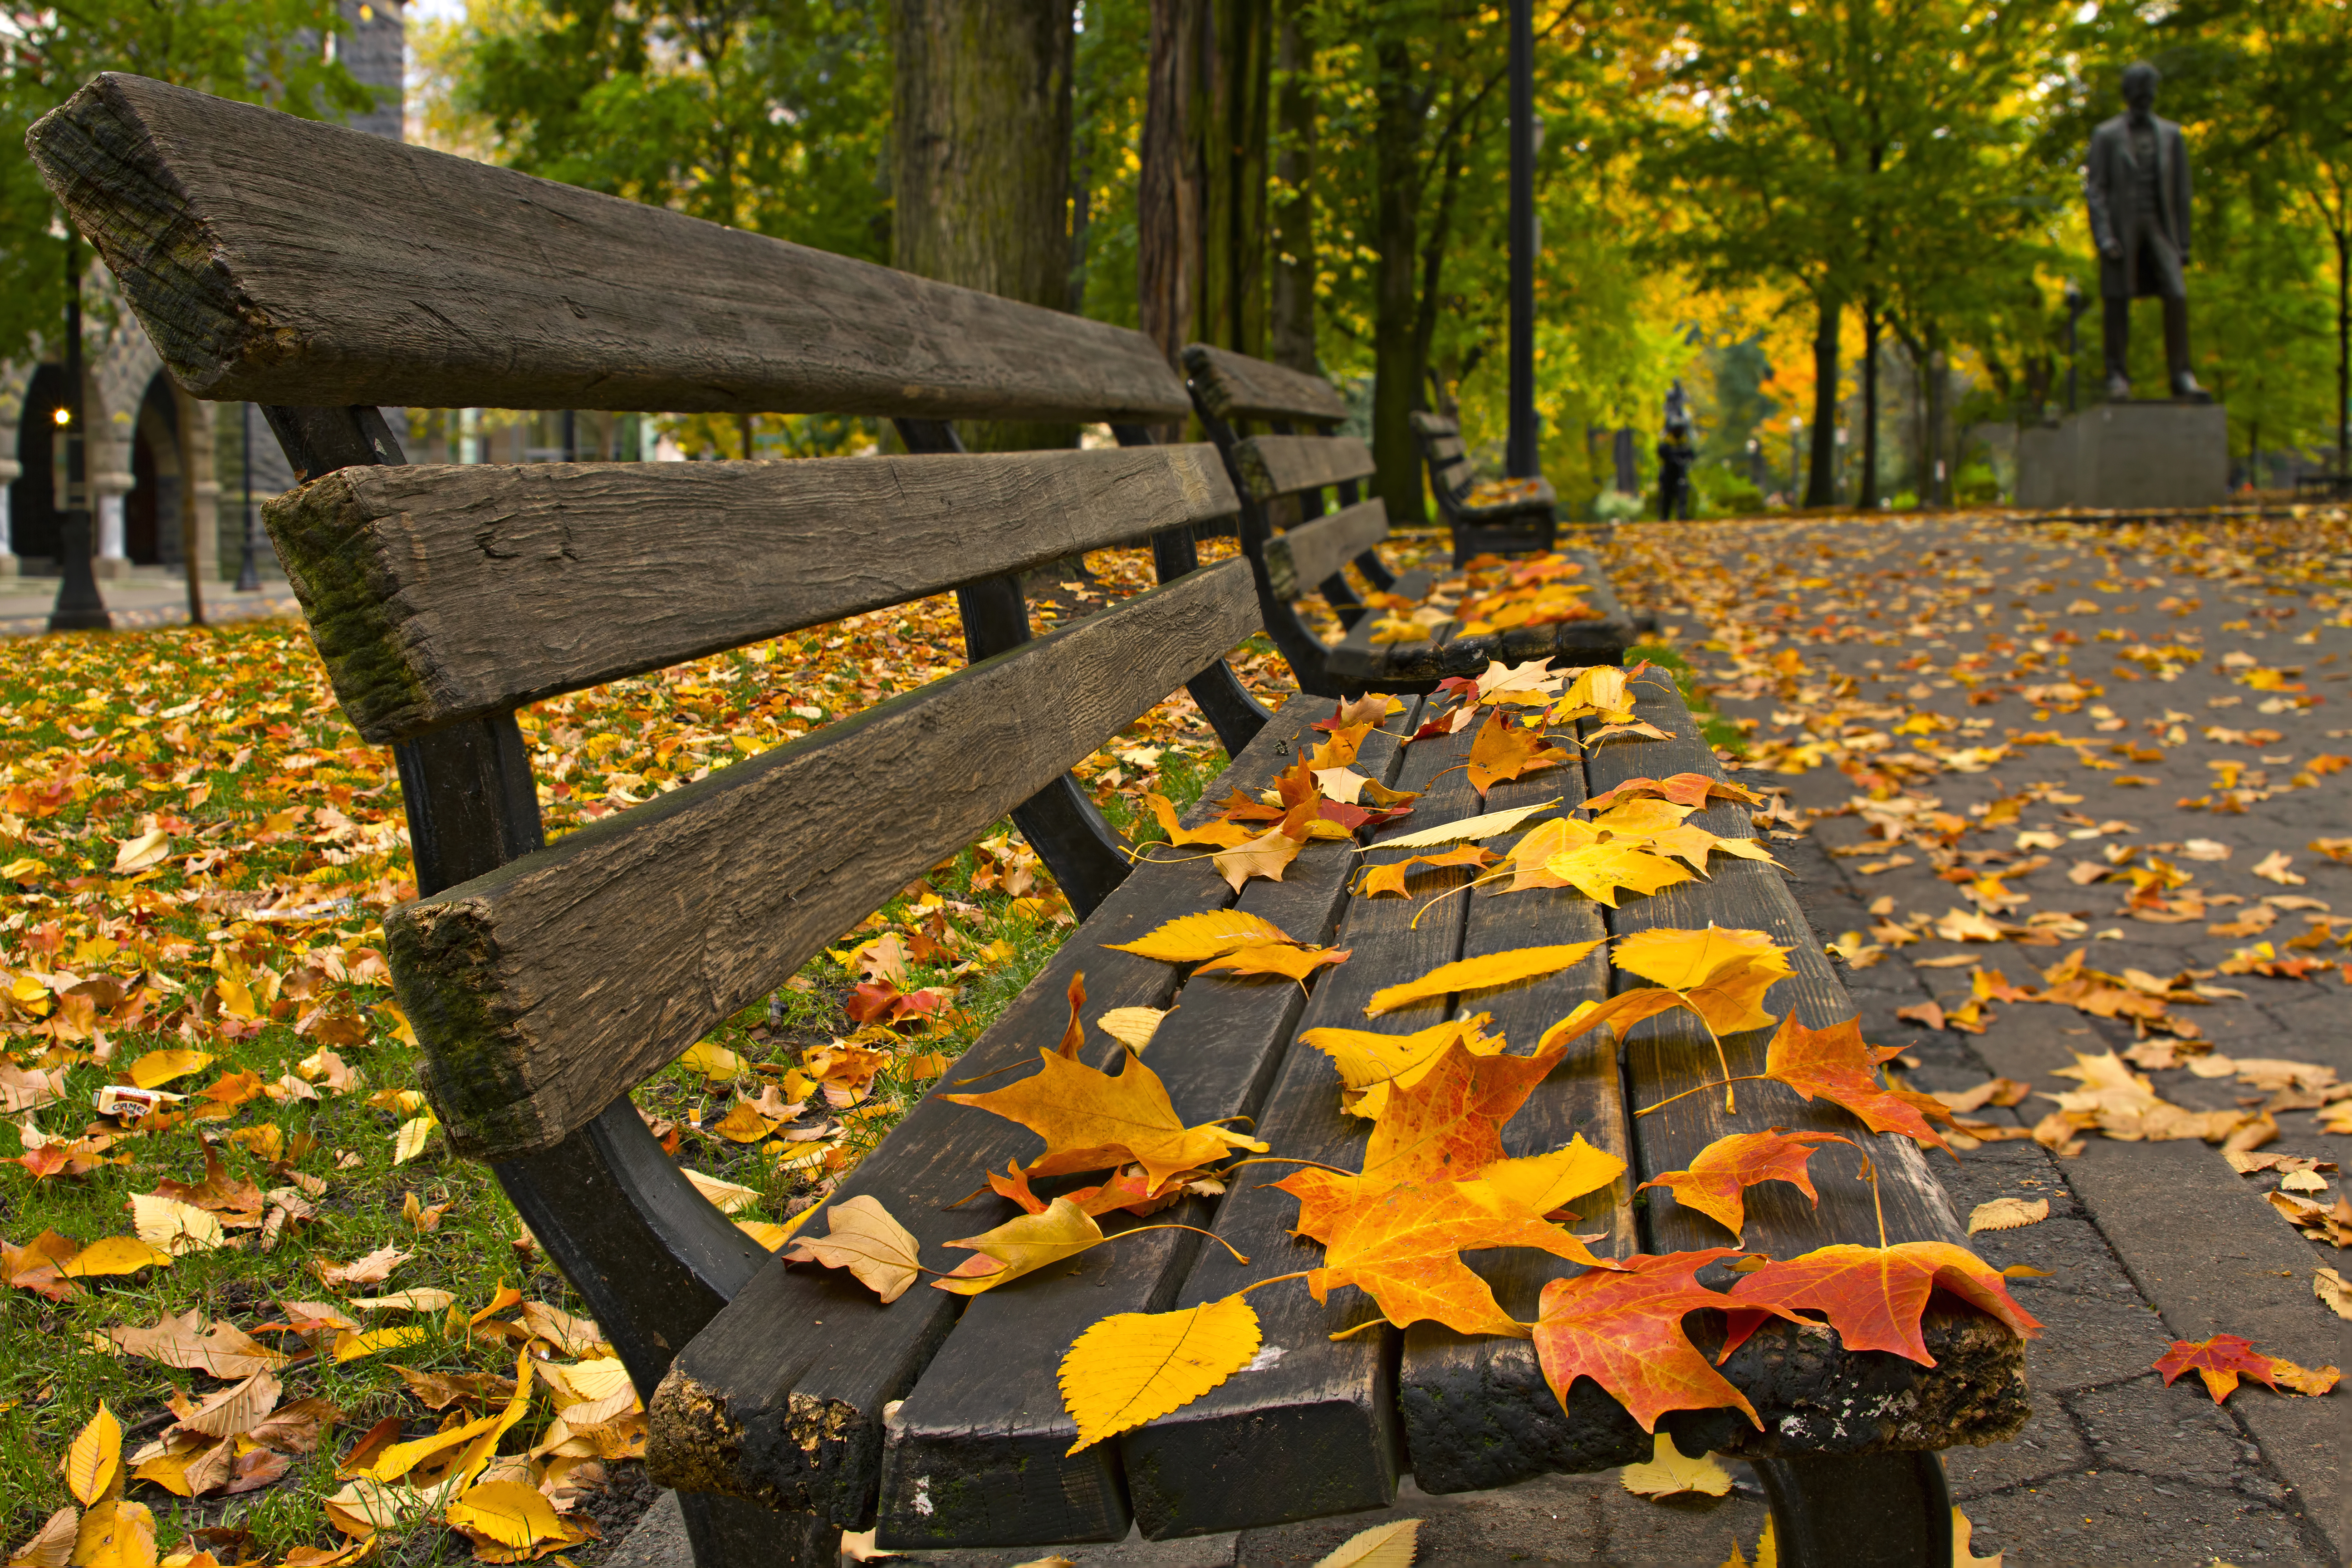 autumn leaves on bench - photo #2